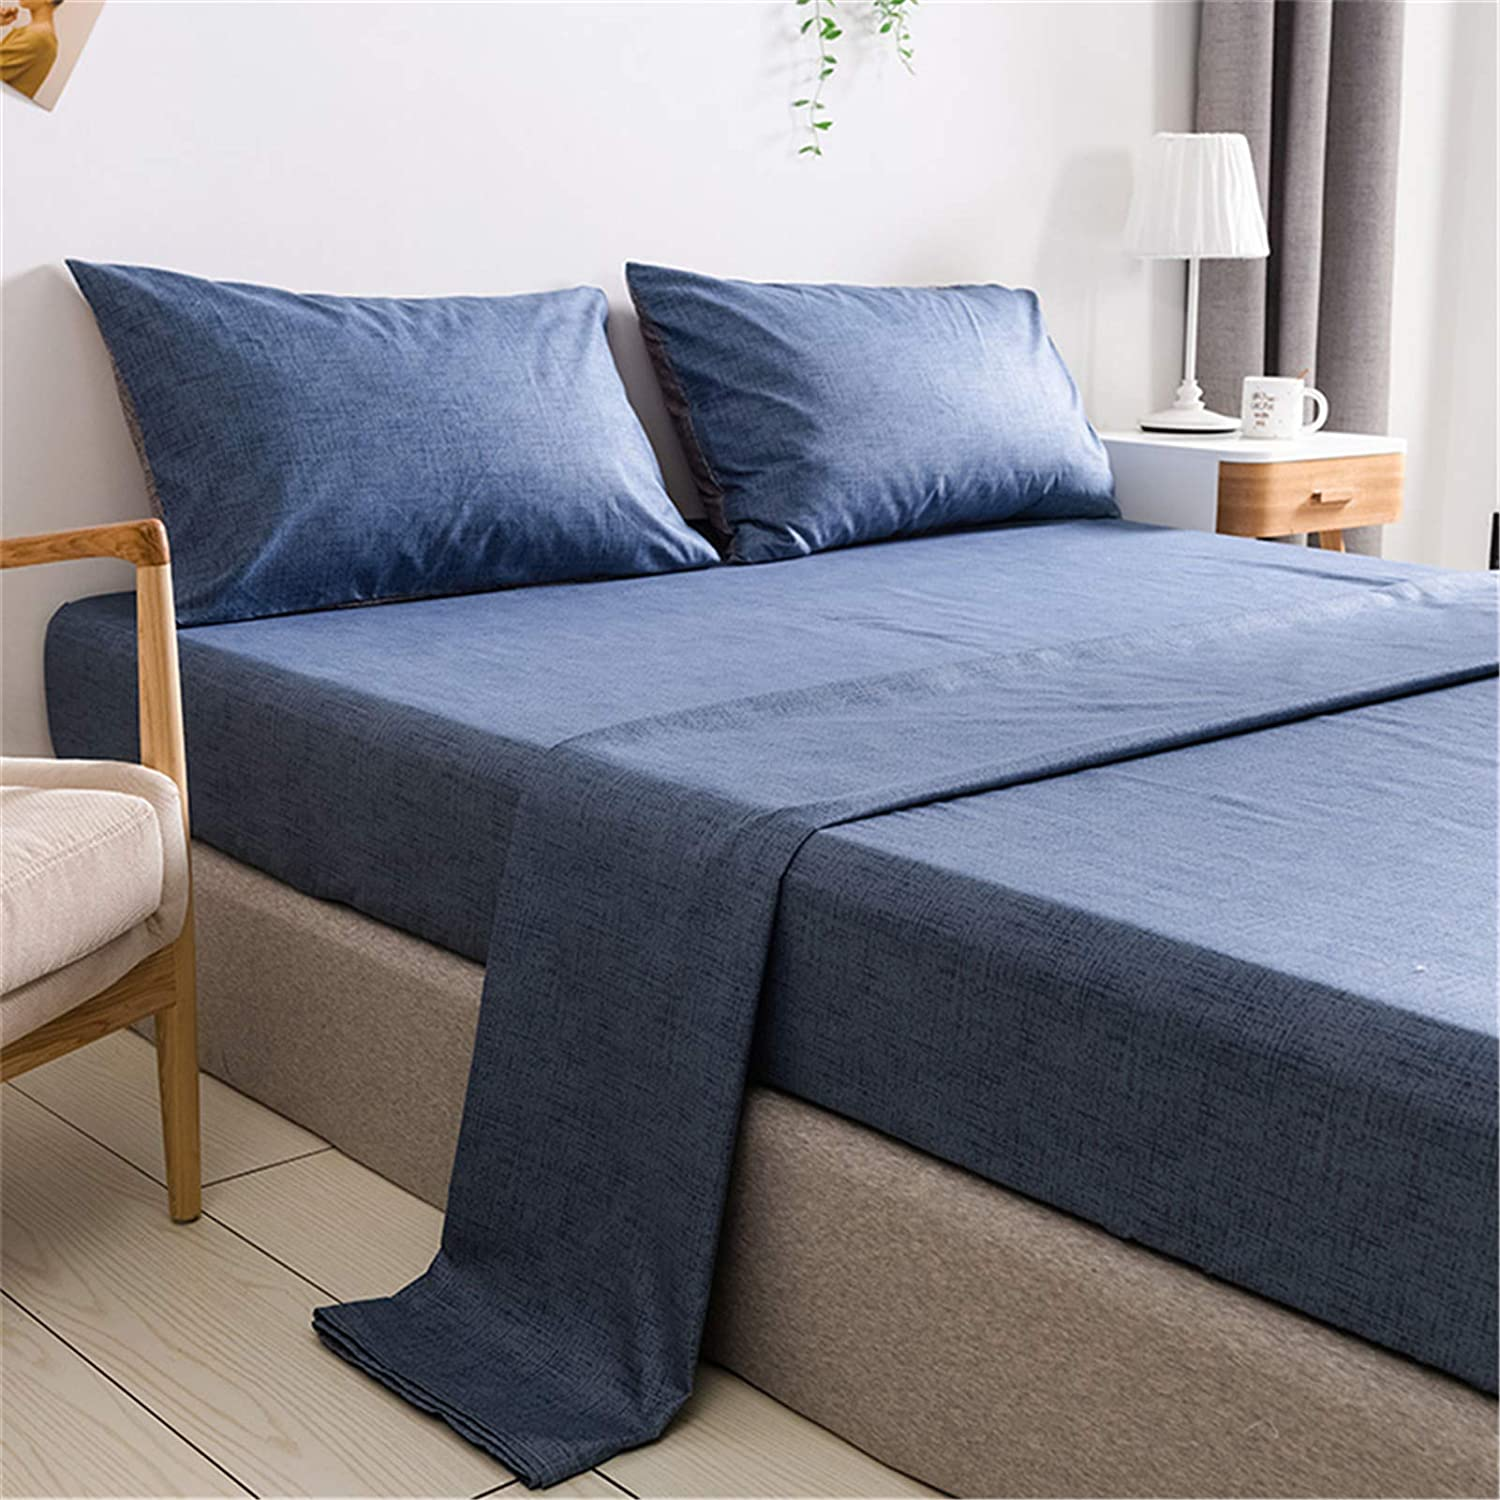 Amazon Com Omelas 4 Pcs Blue Bed Sheets Set Queen Size Kids Teens Soft Microfiber Sheets Modern Farmhouse Plain Bedding Set 1 Deep Pockets Fitted Sheet 1 Solid Colored Flat Sheet